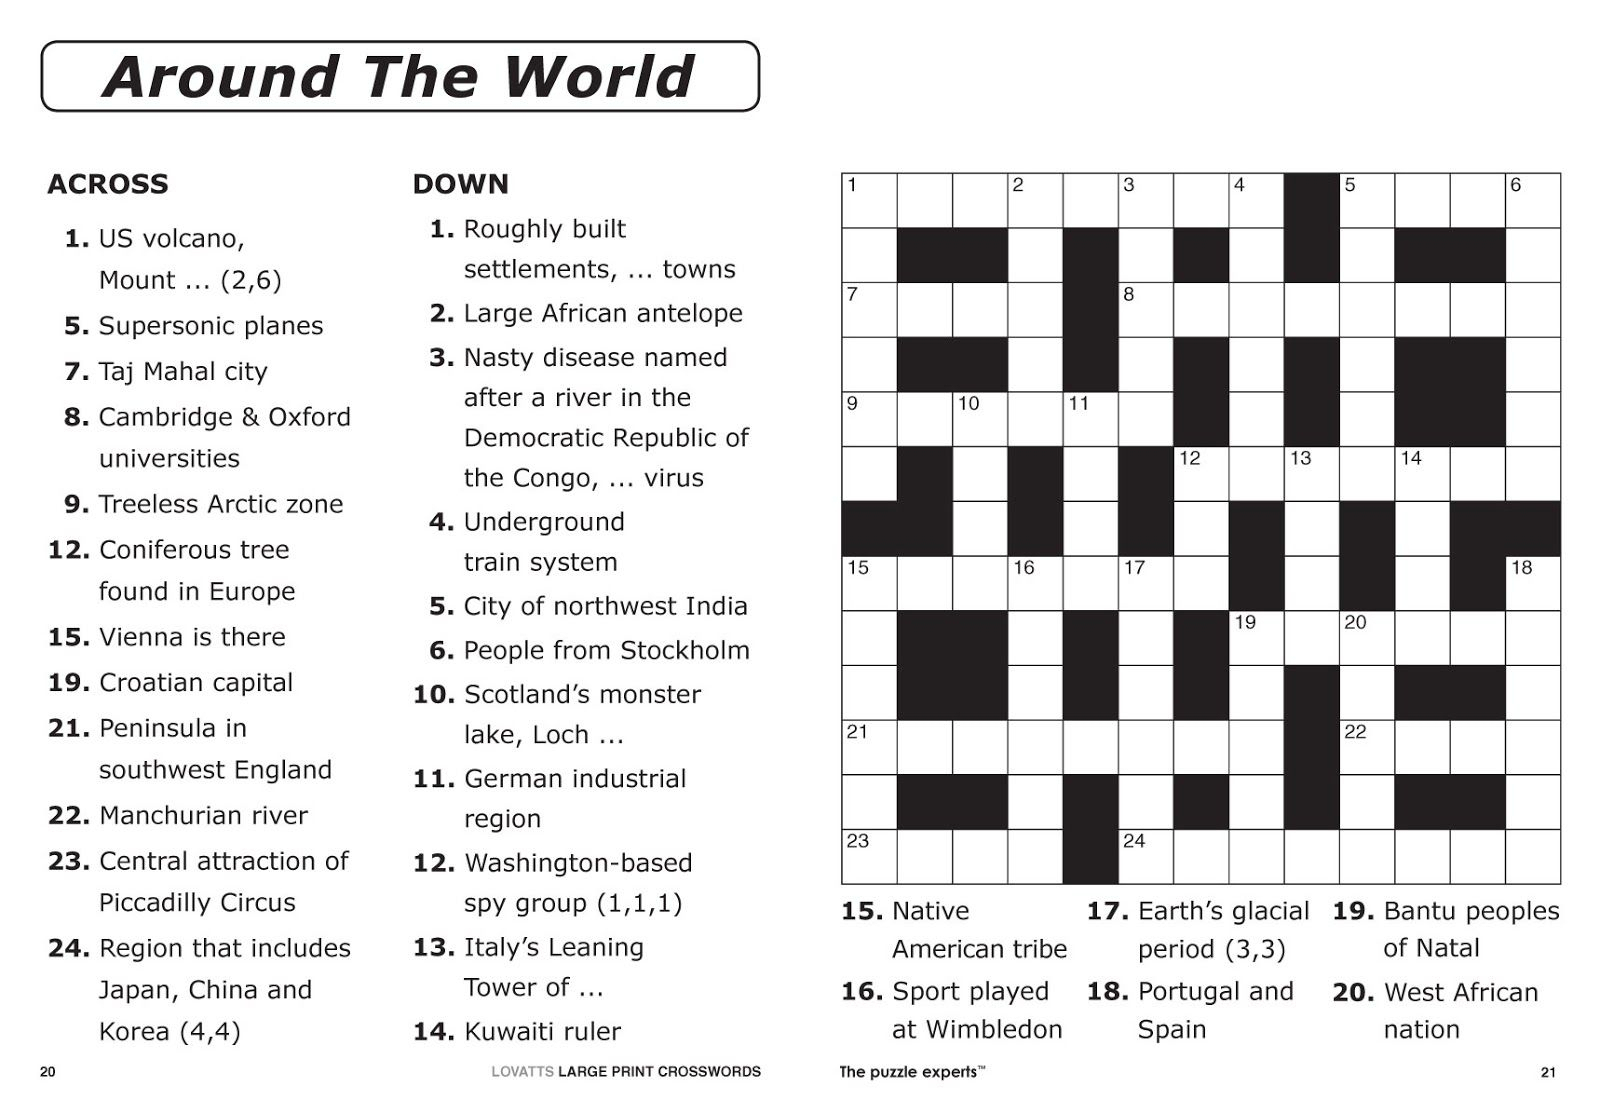 Free Printable Large Print Crossword Puzzles | M3U8 - Printable Crossword Puzzle For 8 Year Old